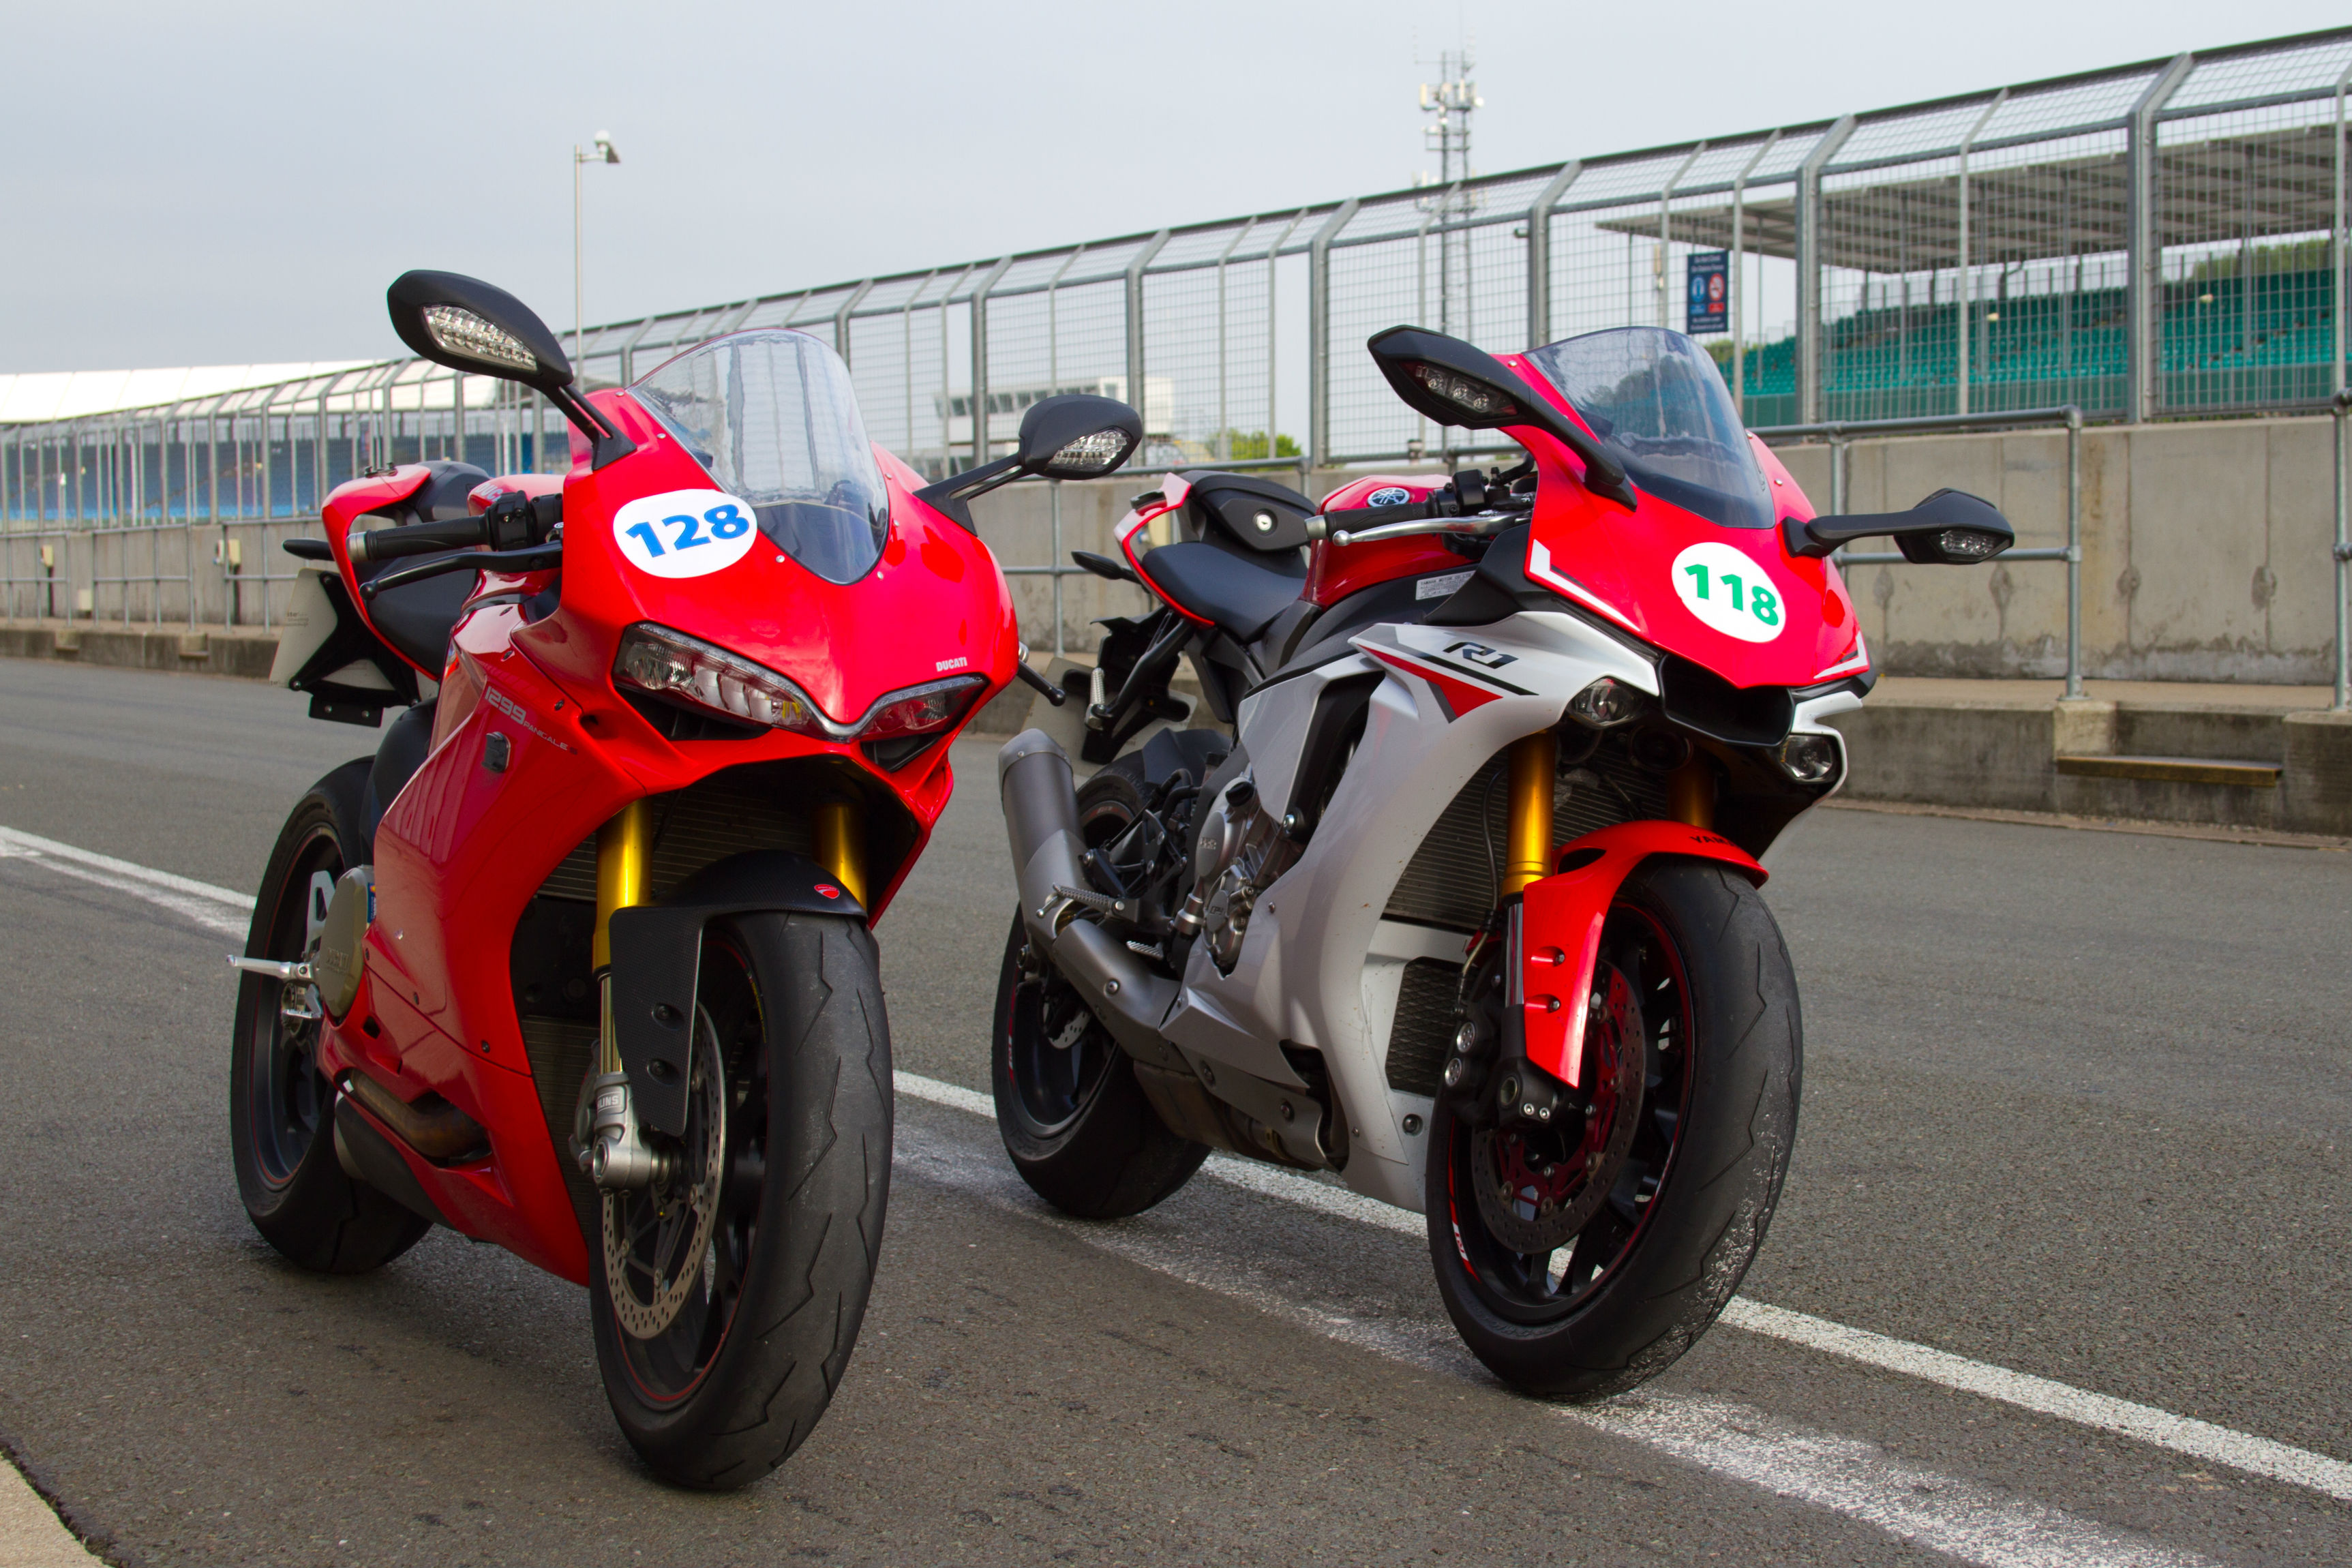 CONTINUE READING OUR YAMAHA R1 VS DUCATI 1299 PANIGALE S REVIEW Outline